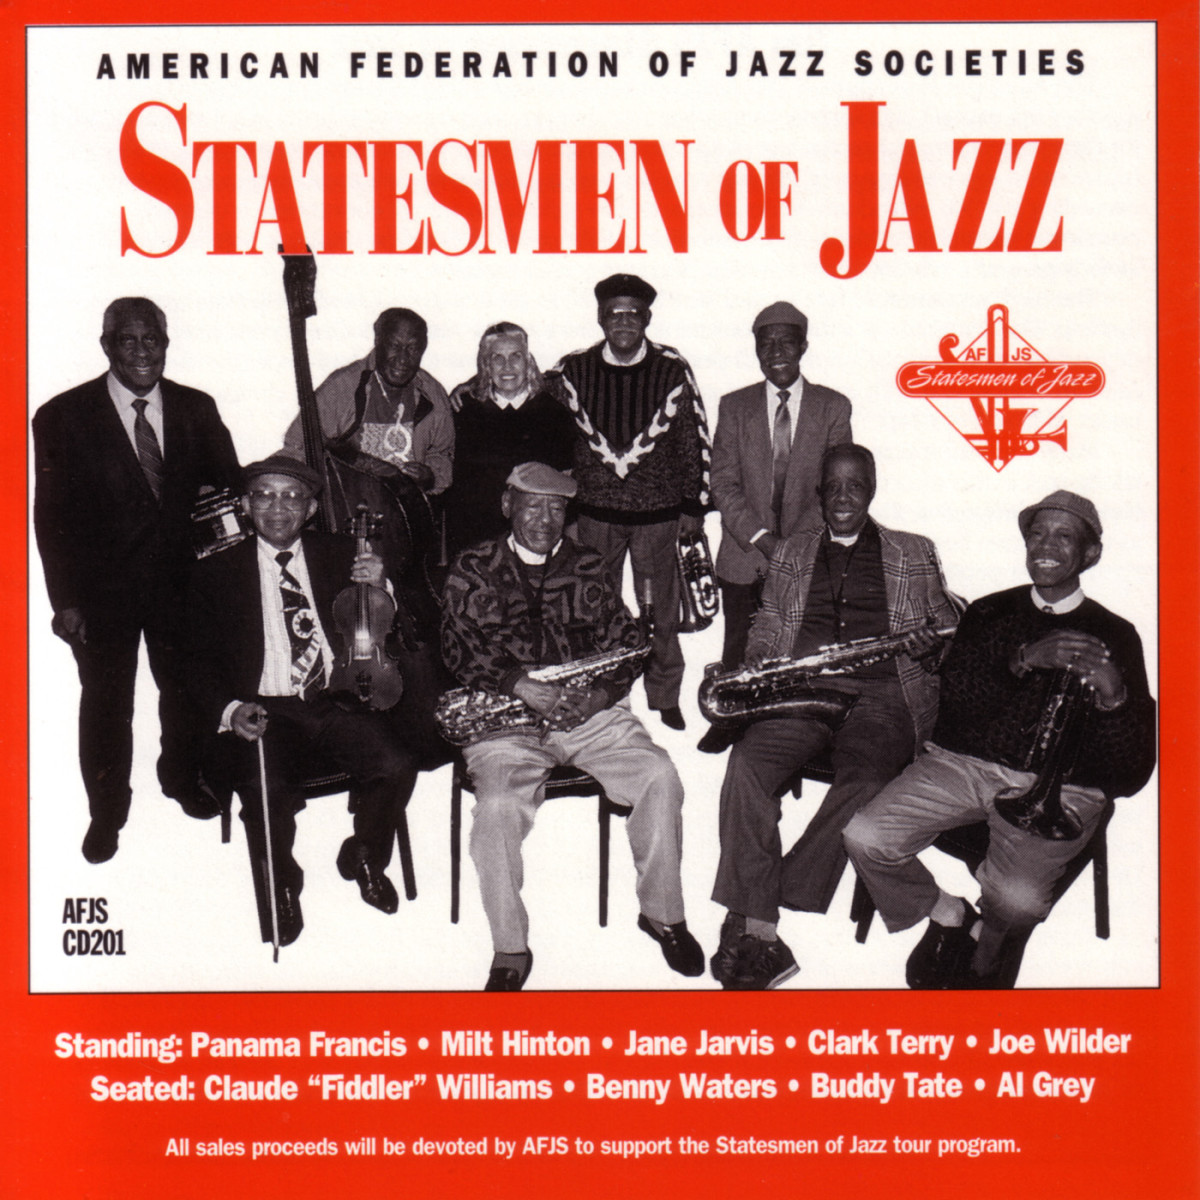 Al Grey and the Statesmen Of Jazz